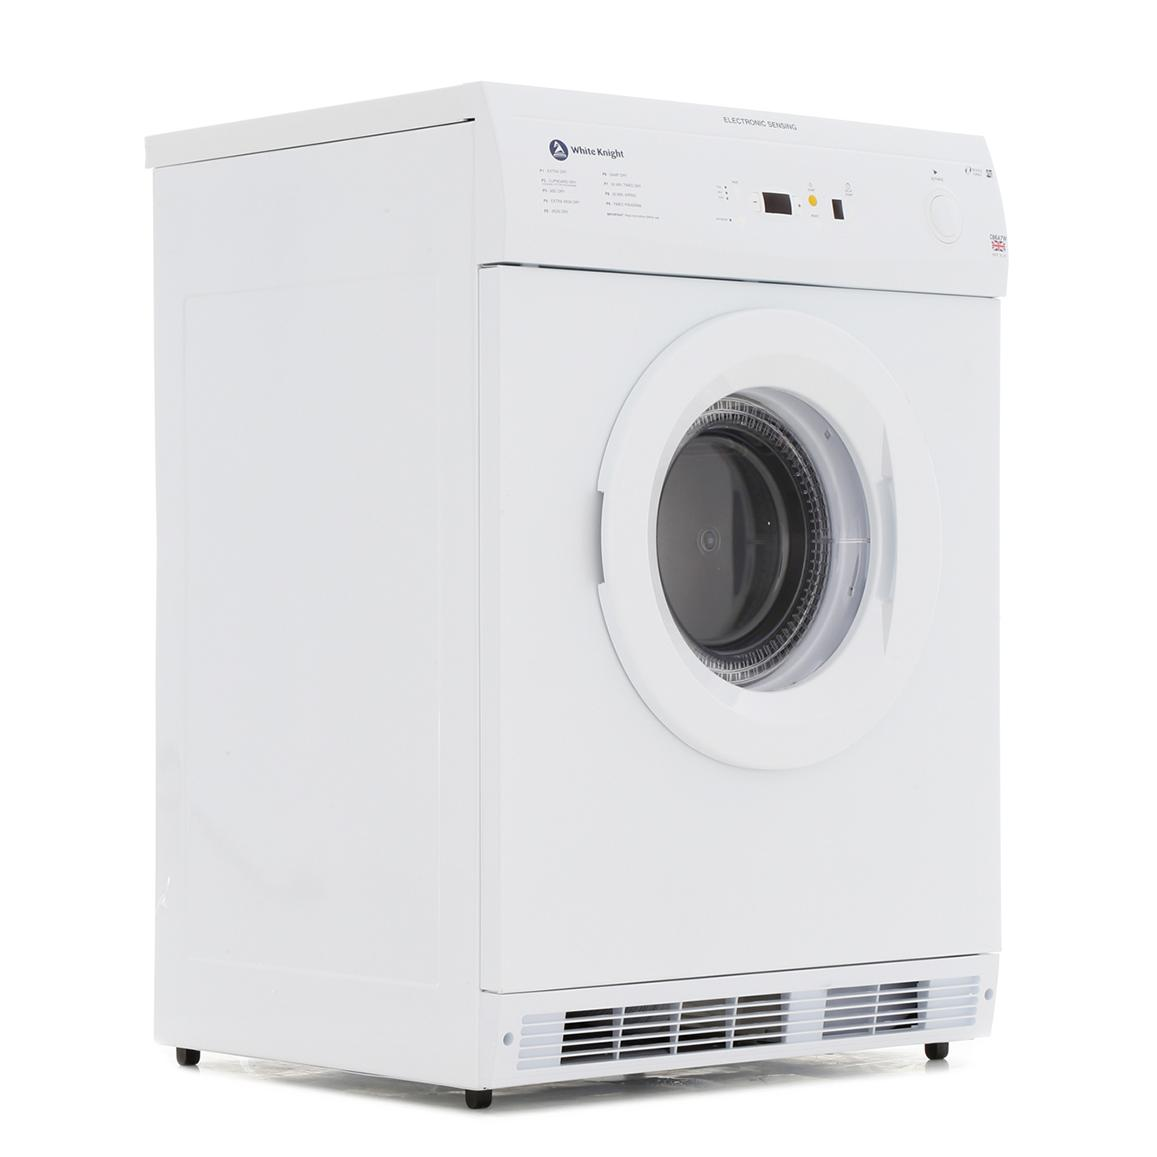 White Knight C86A7W Vented Dryer